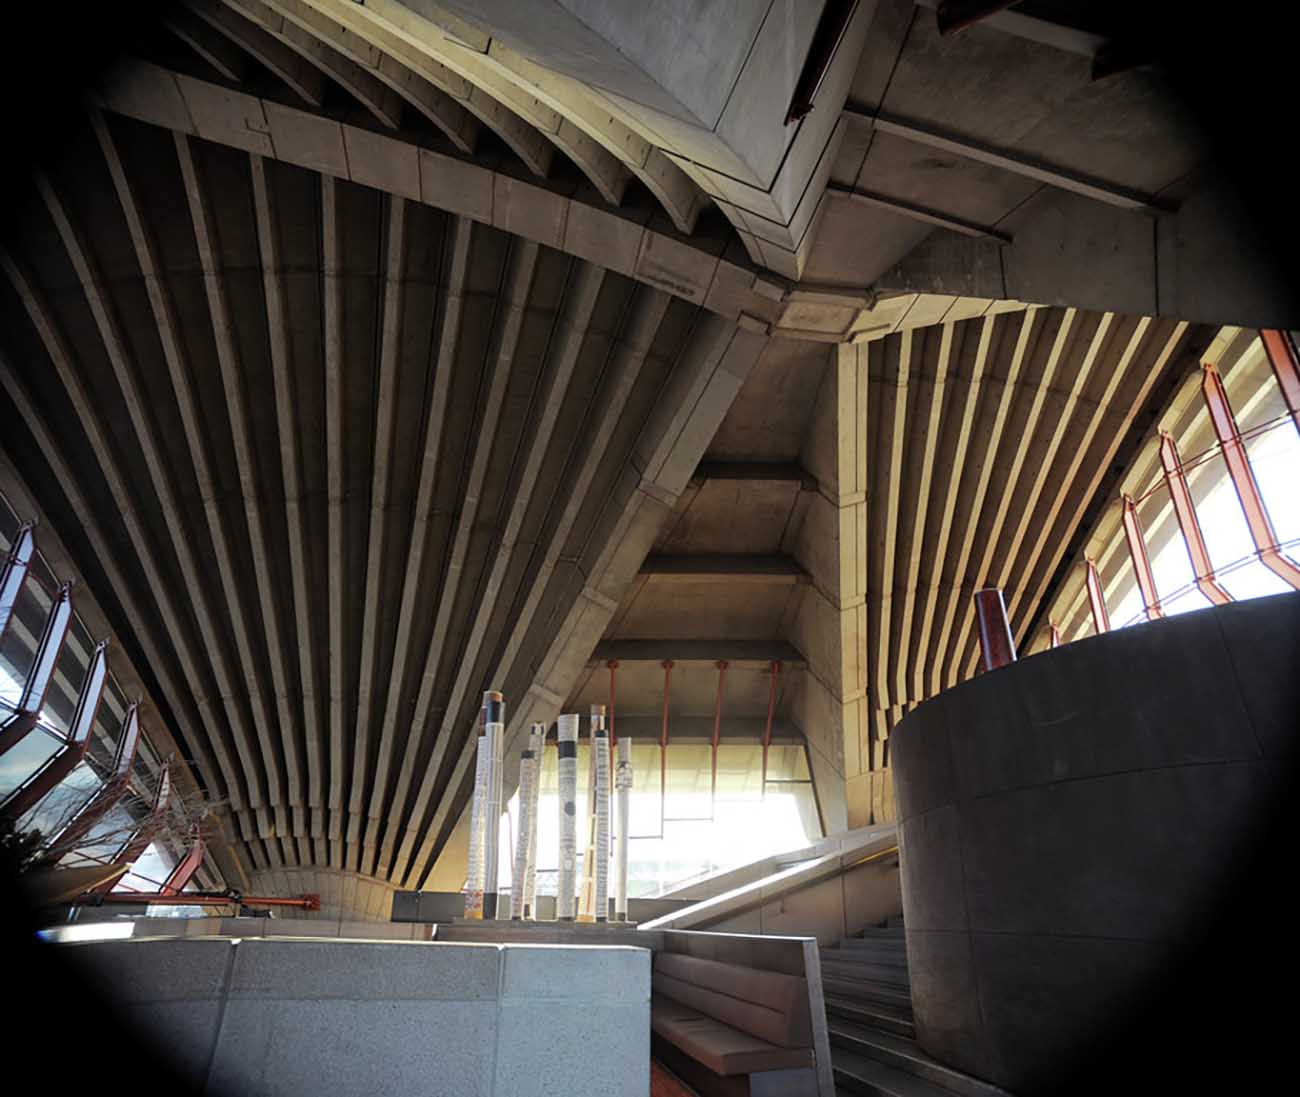 Interior of Bennelong Restaurant in the Sydney Opera House showing the structure's precast concrete ribs.